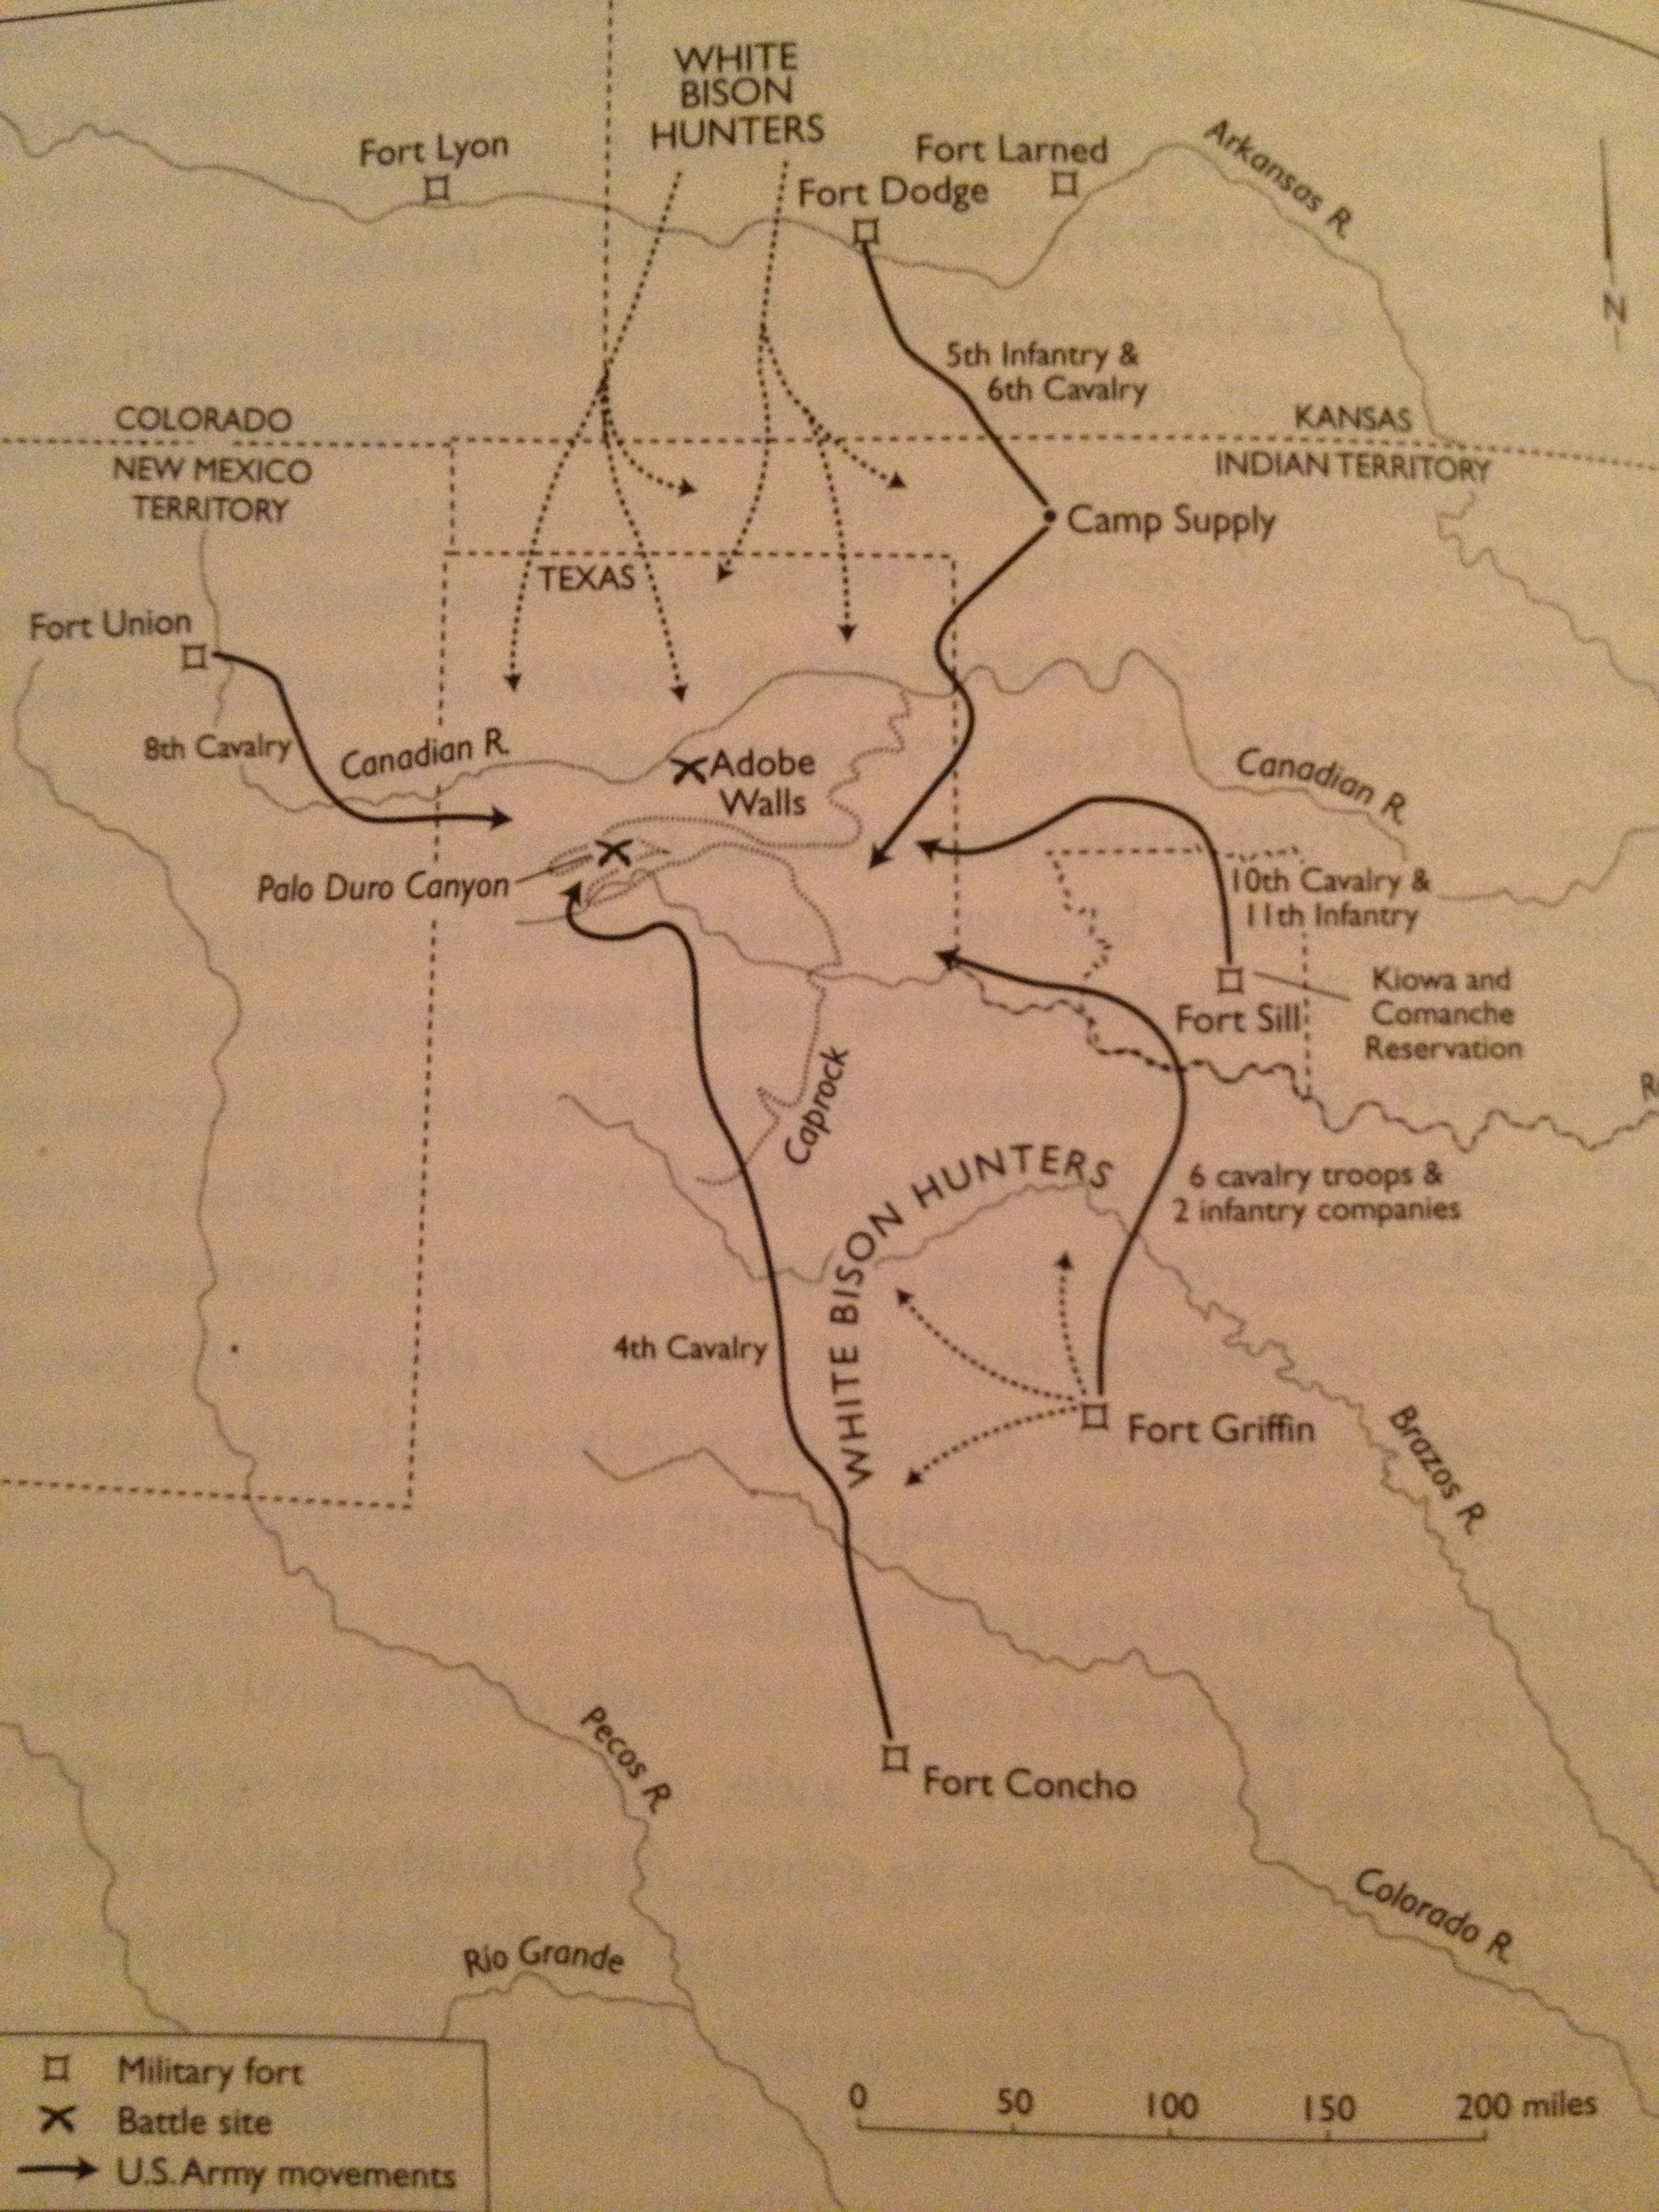 After The Invasion Of The Comancheria In 1847 At Palo Duro Canyon The Comanche S Econ Native American History Native North Americans University Of New Mexico